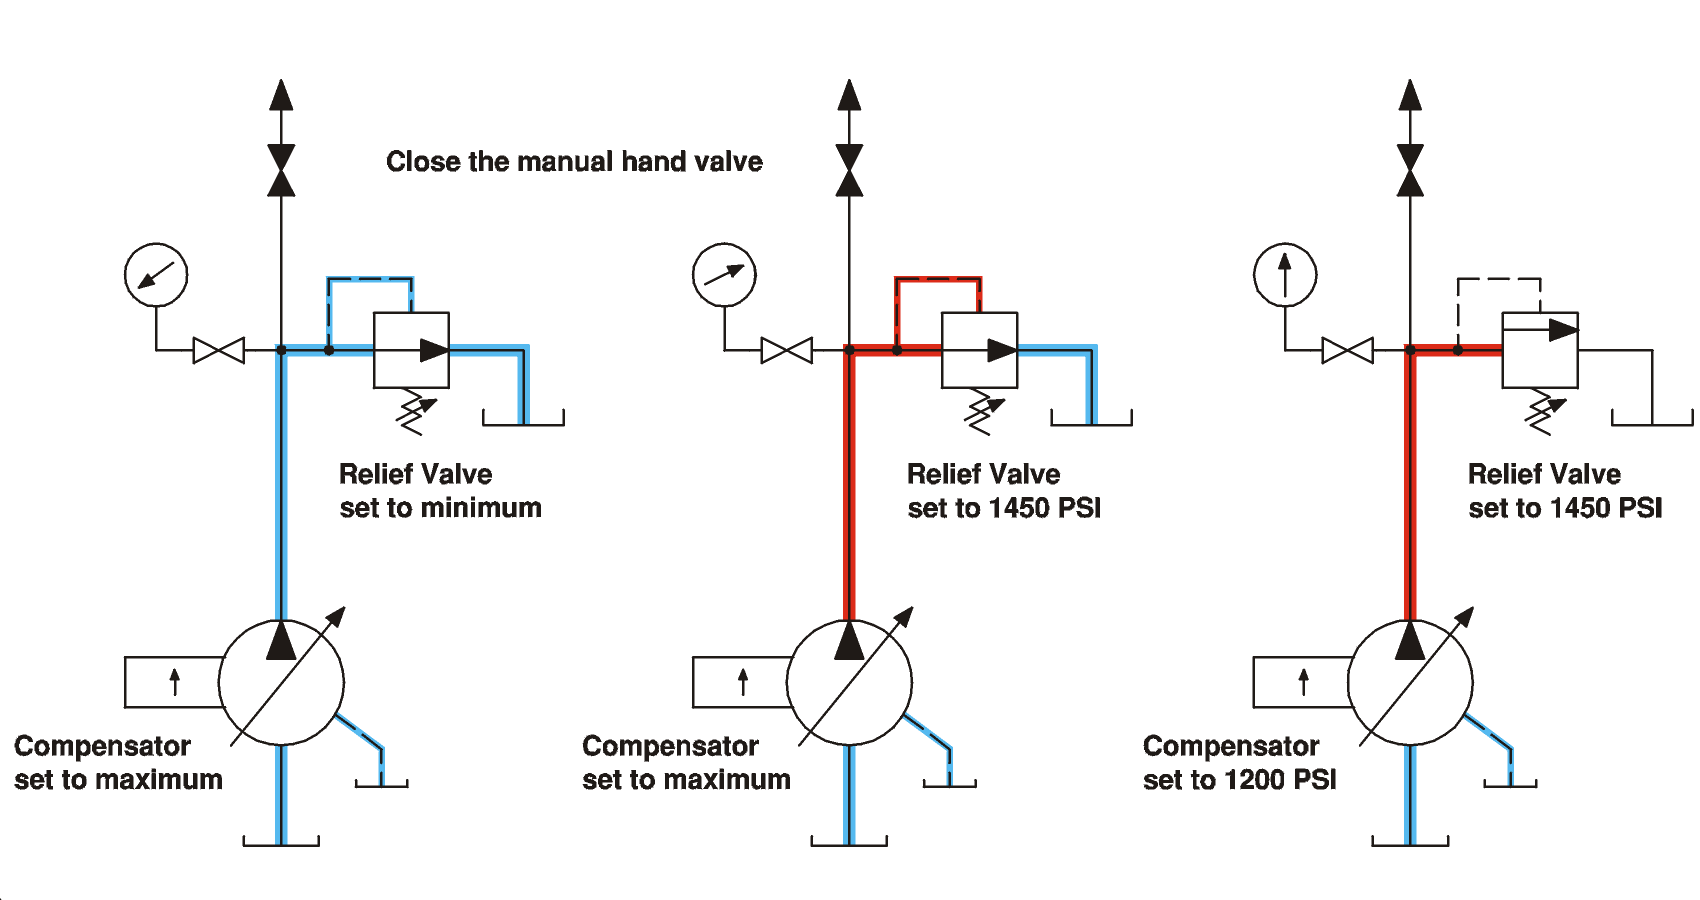 Setting The Pump Compensator And System Relief Valve